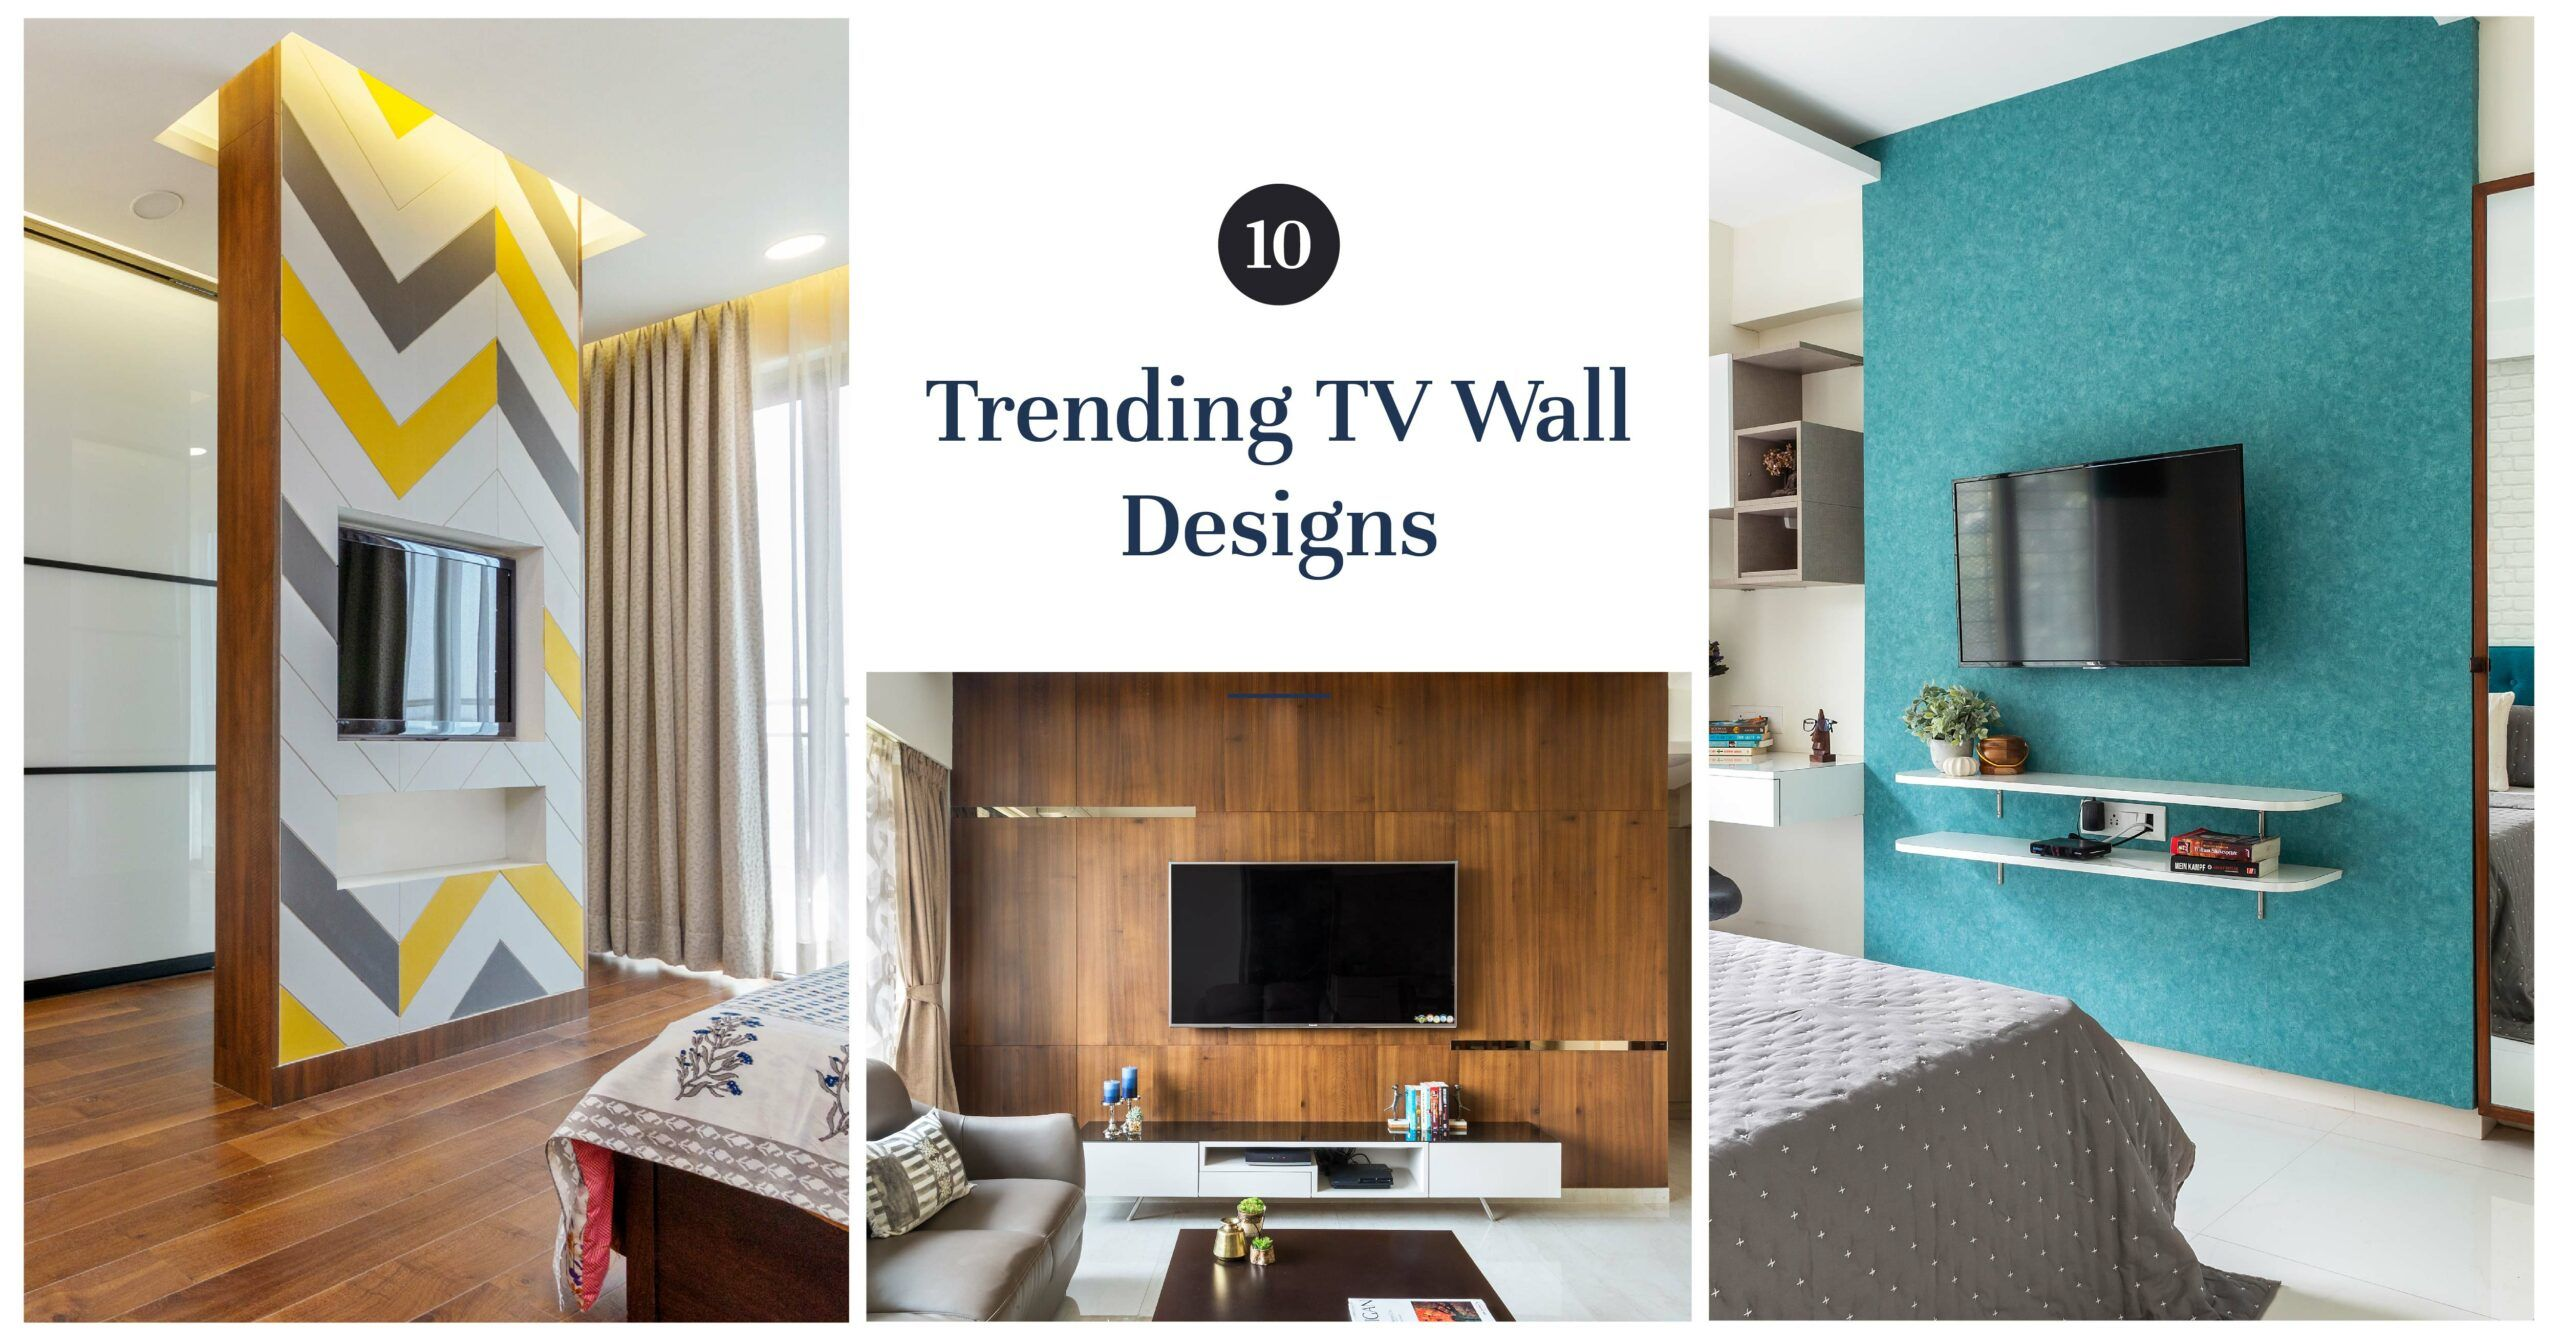 19 Ways to Give Your TV Wall a Striking Upgrade